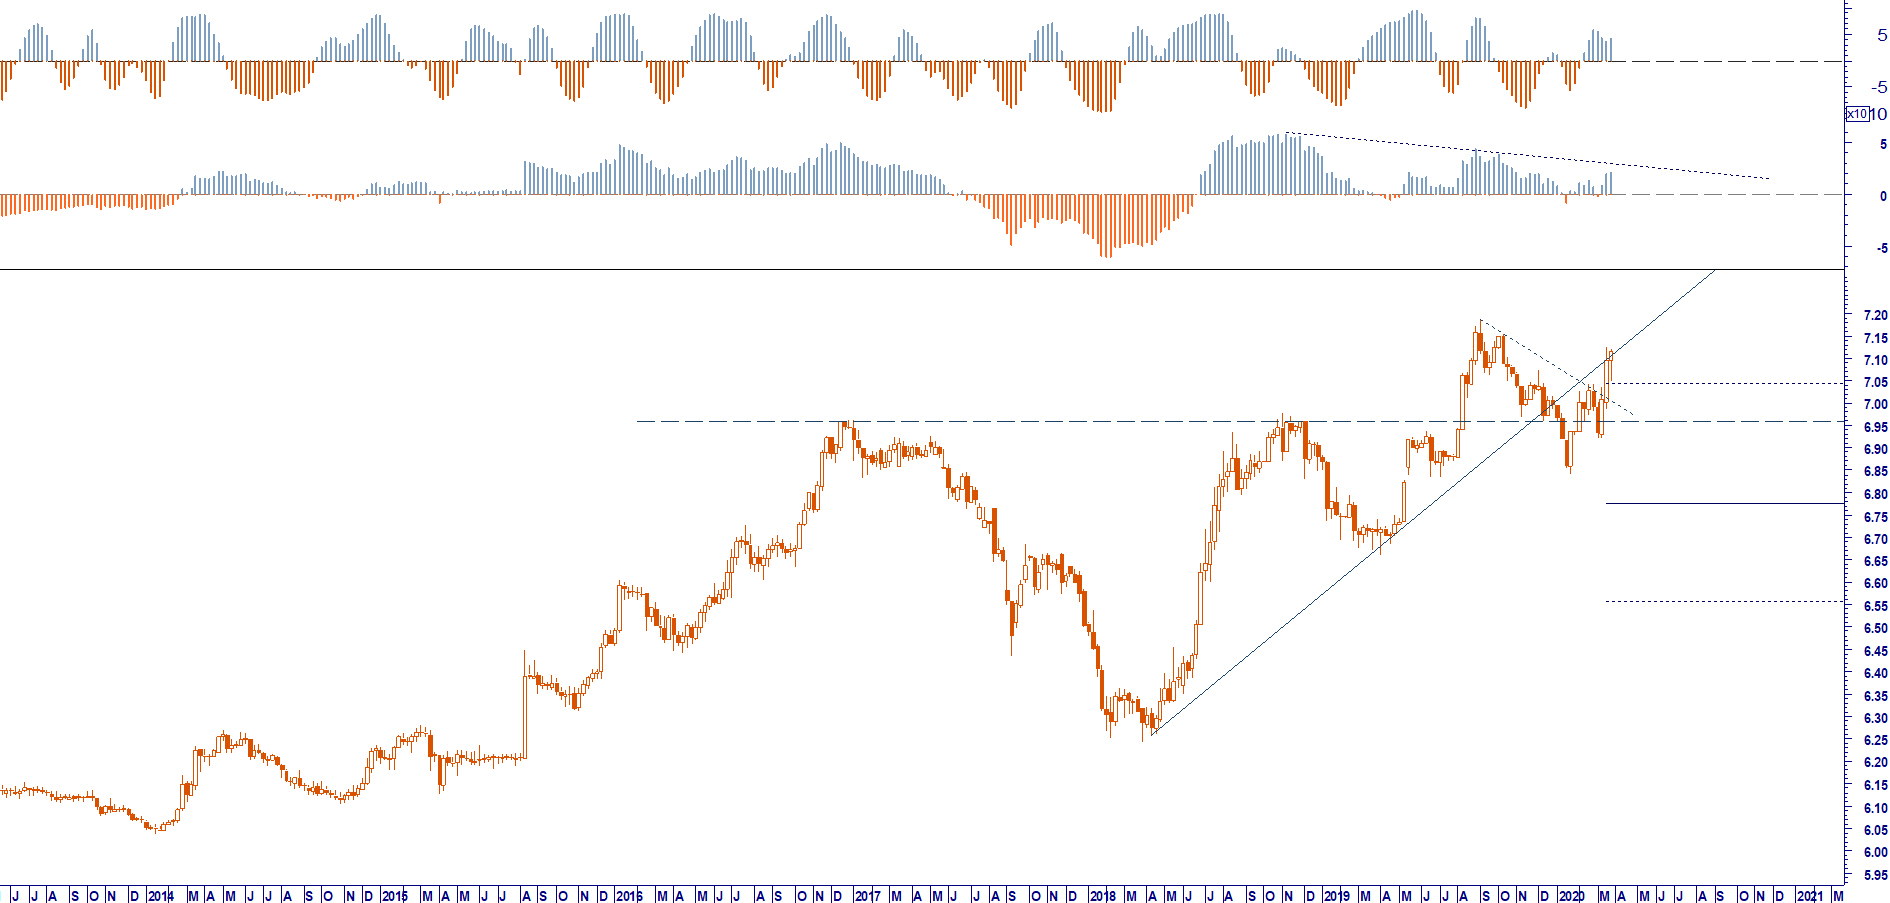 WB FX RISK MANAGEMENT: USD JPY